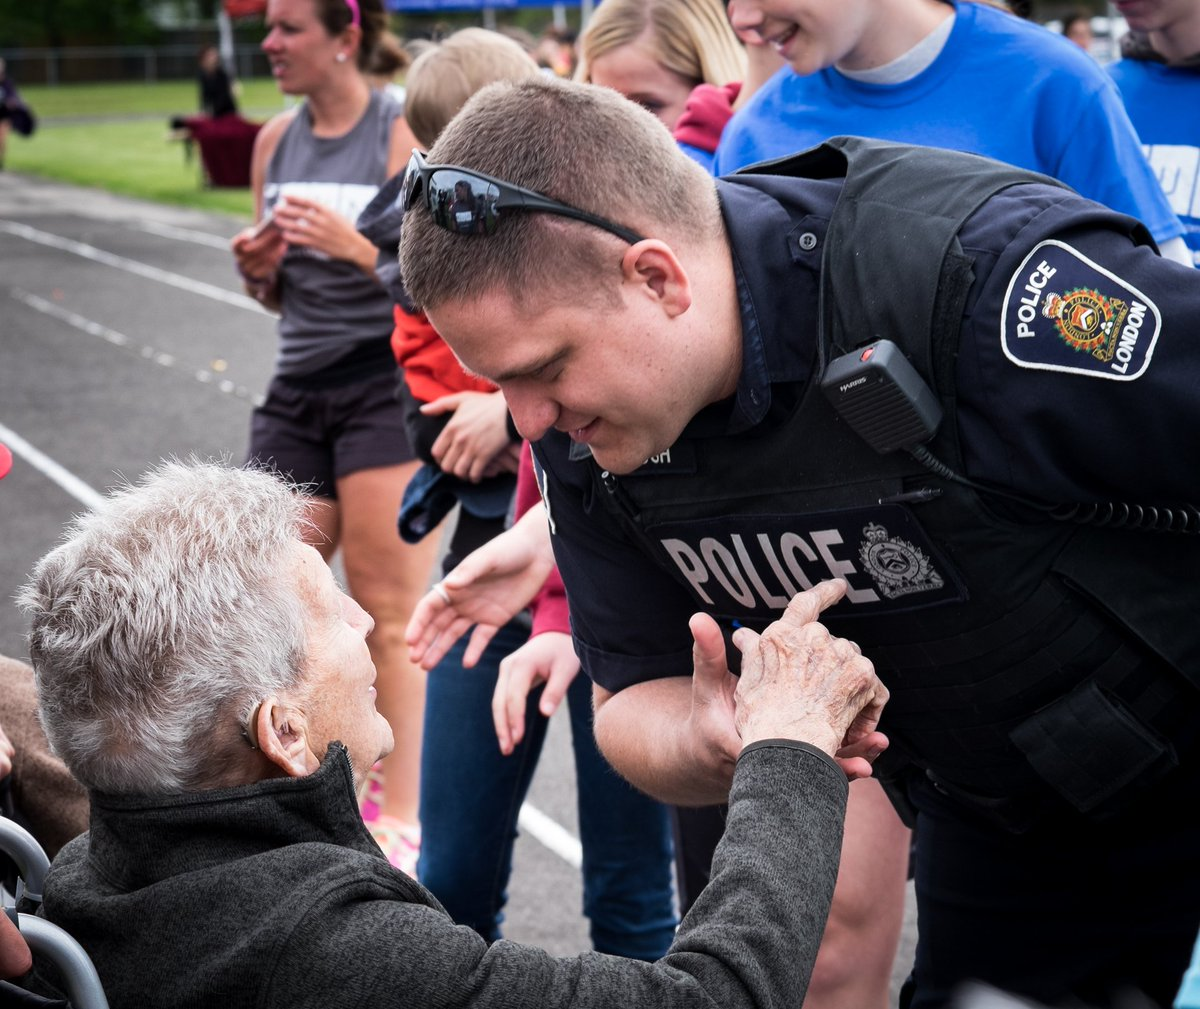 Amazing photo of one our officers thanking our WWII Veterans on the final day of @ONERUNWEEK #PoliceWeekON Thanks @JustinTiseo #ldnont<br>http://pic.twitter.com/JP8M2Dfy1q